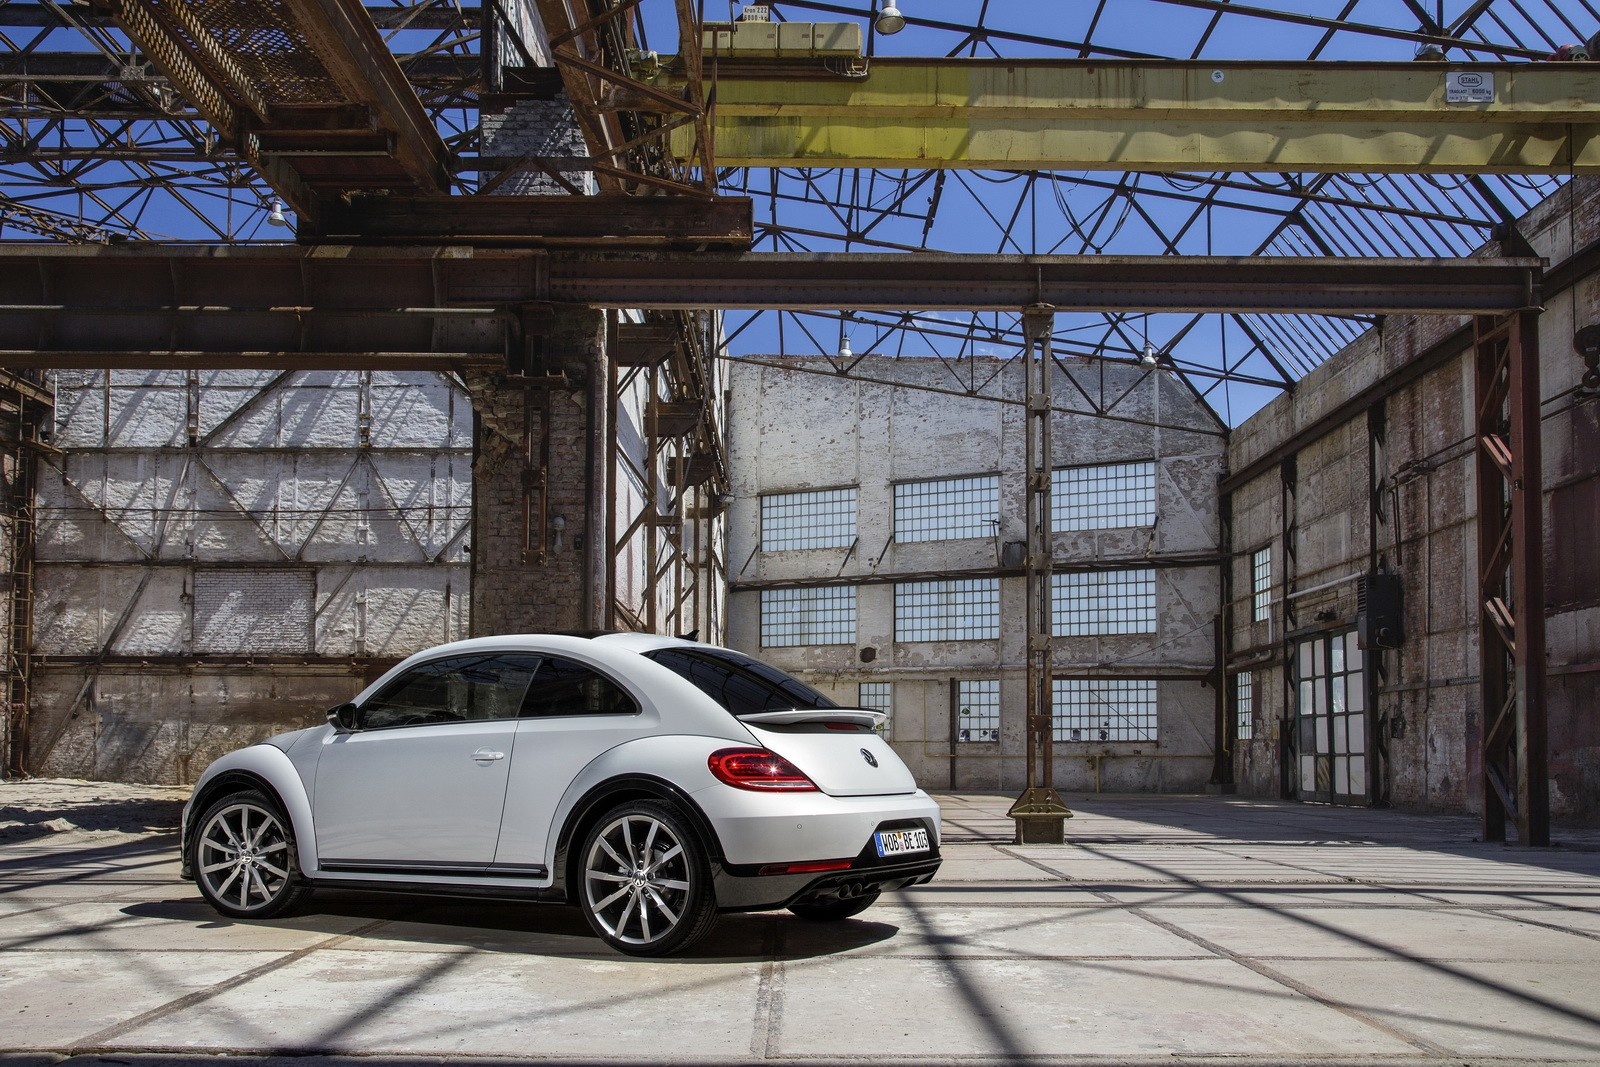 Volkswagen's Next-Generation Beetle Might Come After 2020 - autoevolution